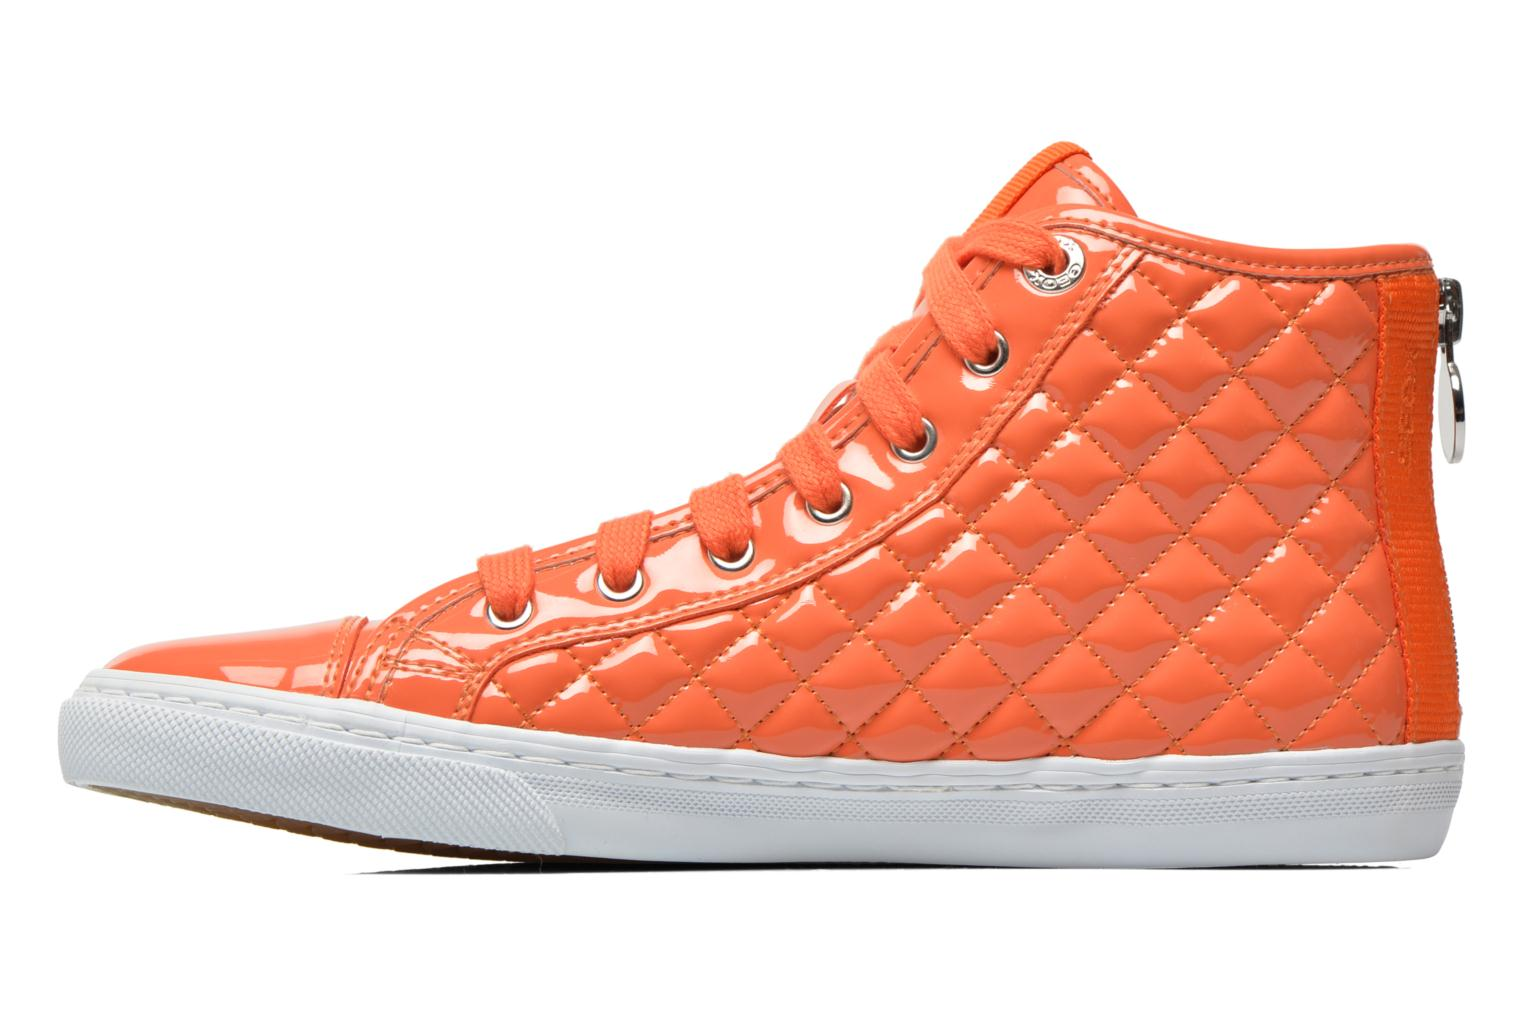 Geox D NEW CLUB A D4258A (Orange) - Baskets Baskets Baskets en Más cómodo Mode pas cher et belle f2b0b0